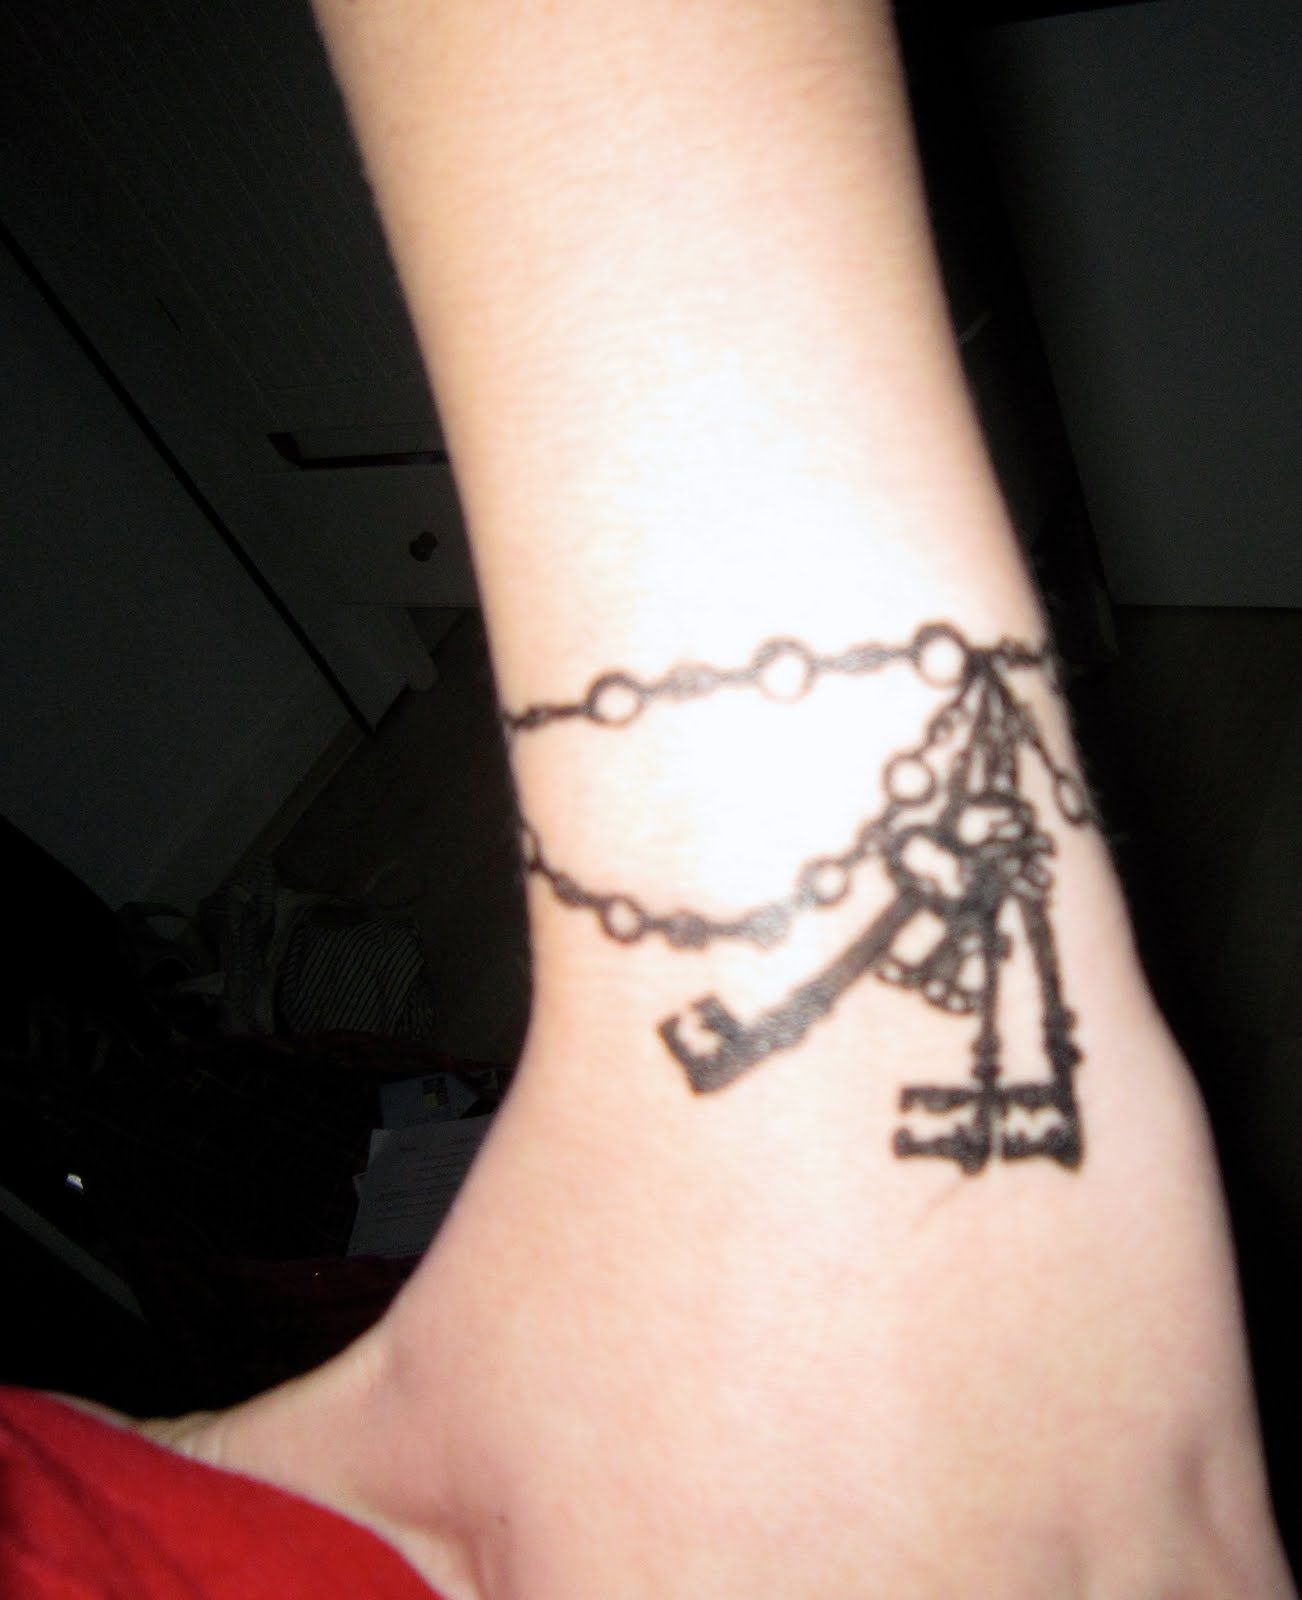 belle tattoos idea like pin tattoo key pens charm bracelet anklet pinterest maisie the